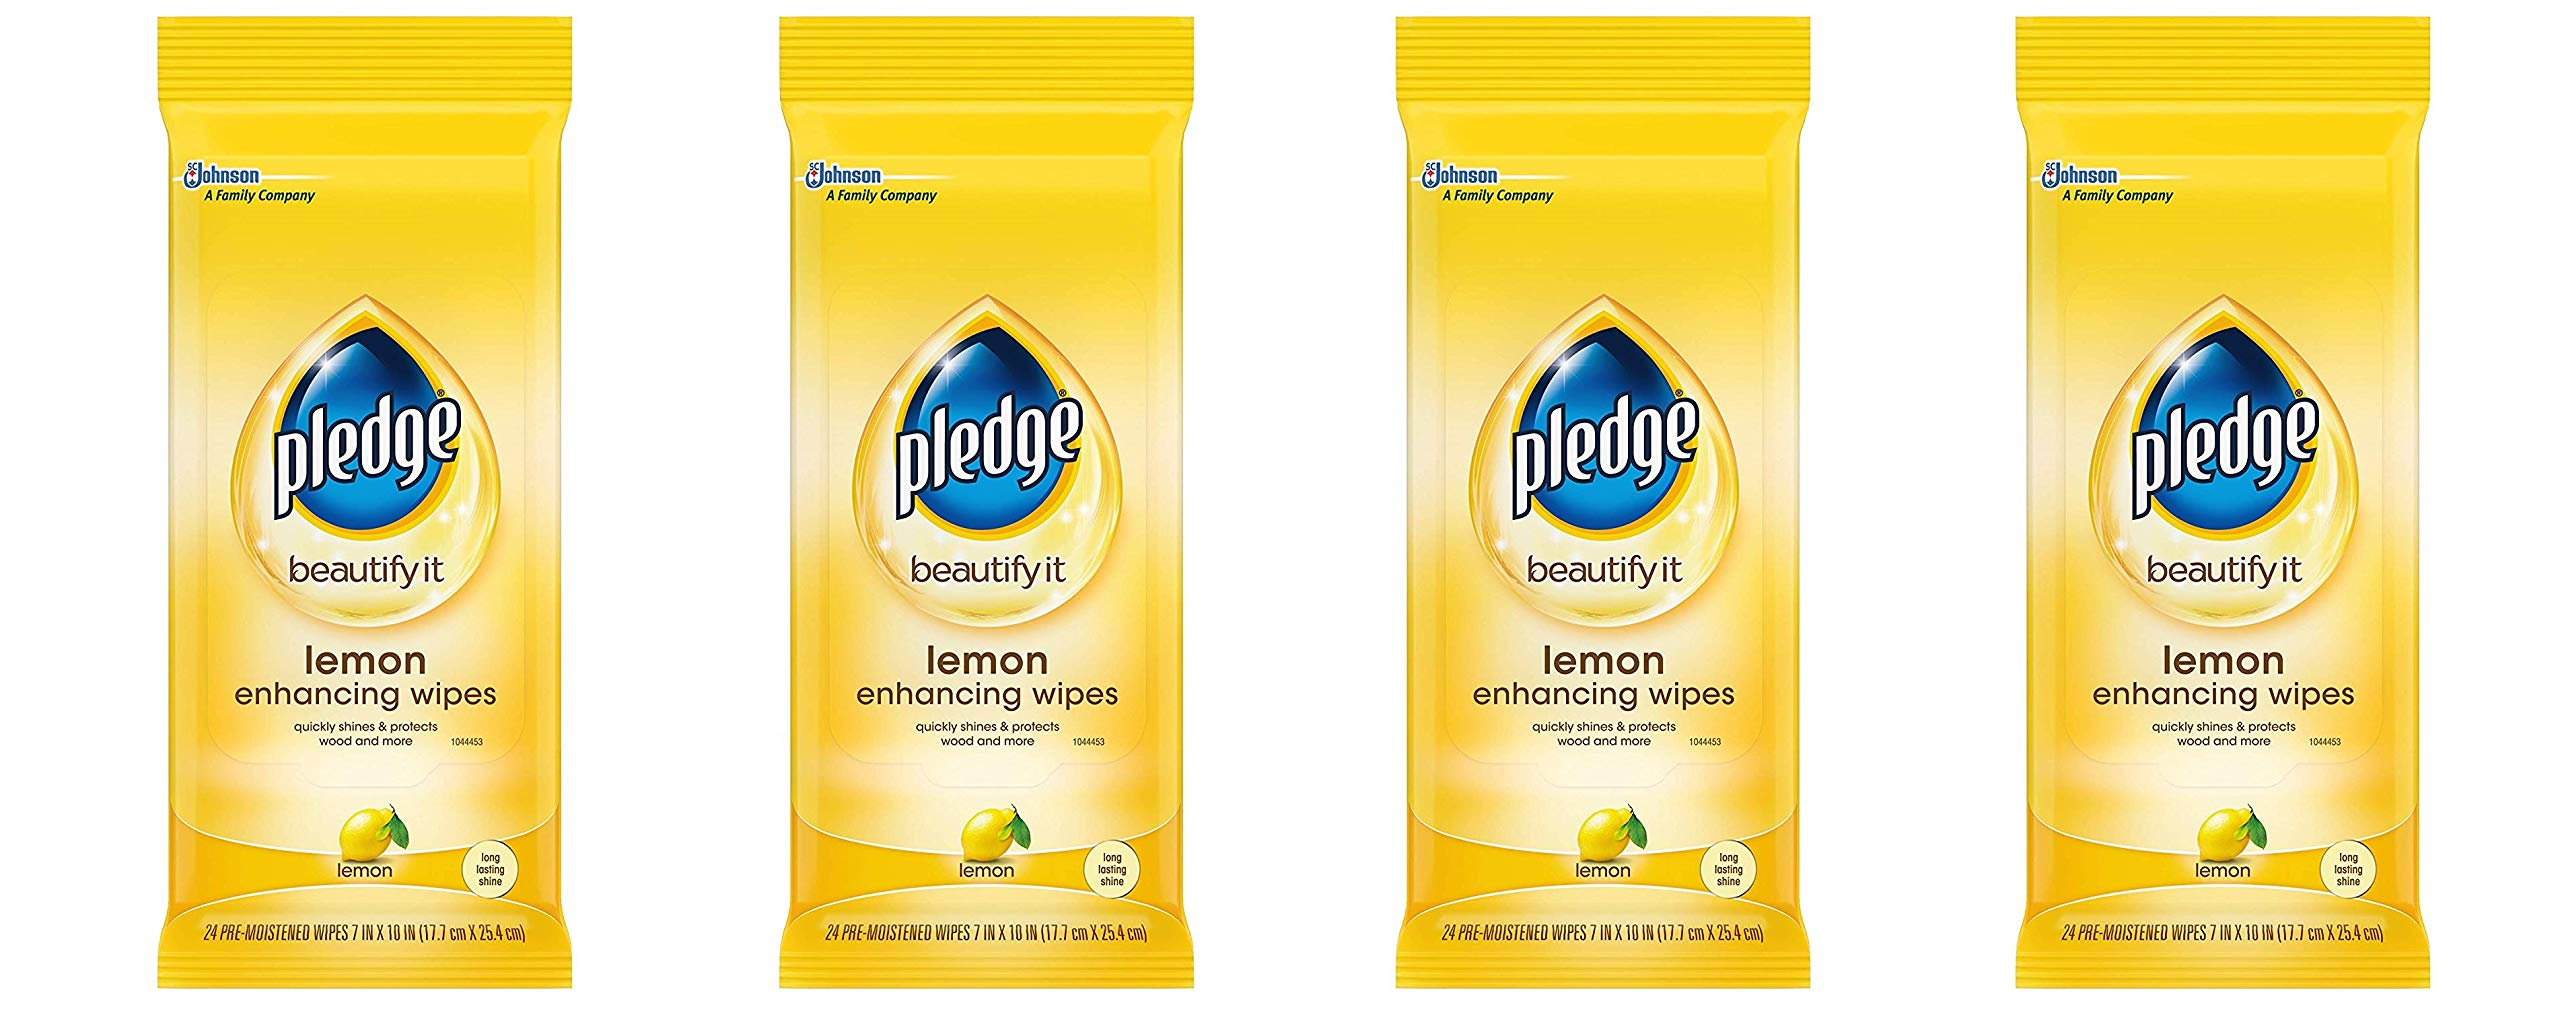 Pledge Lemon Enhancing Wipes - Conveniently Dust, Clean and Shine Wood, Stainless Steel and More (1 Pack), 24 ct (Fоur Paсk, Lemon)